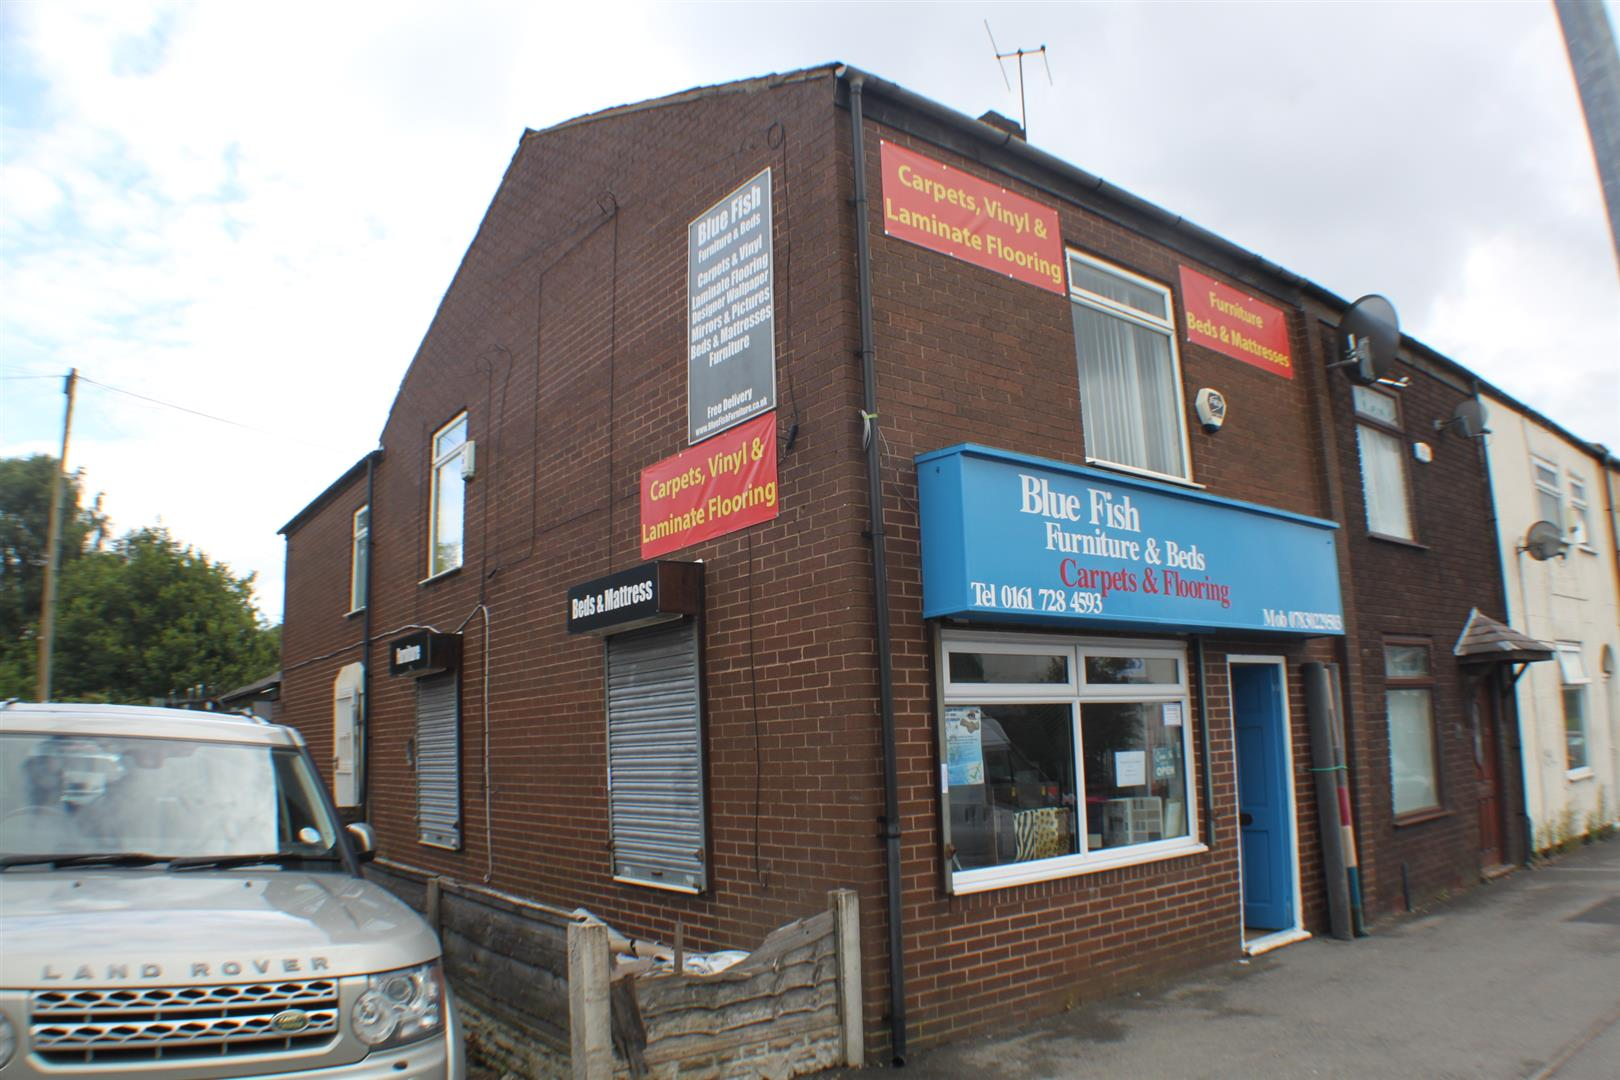 Property for sale in Chorley Road, Swinton, Manchester